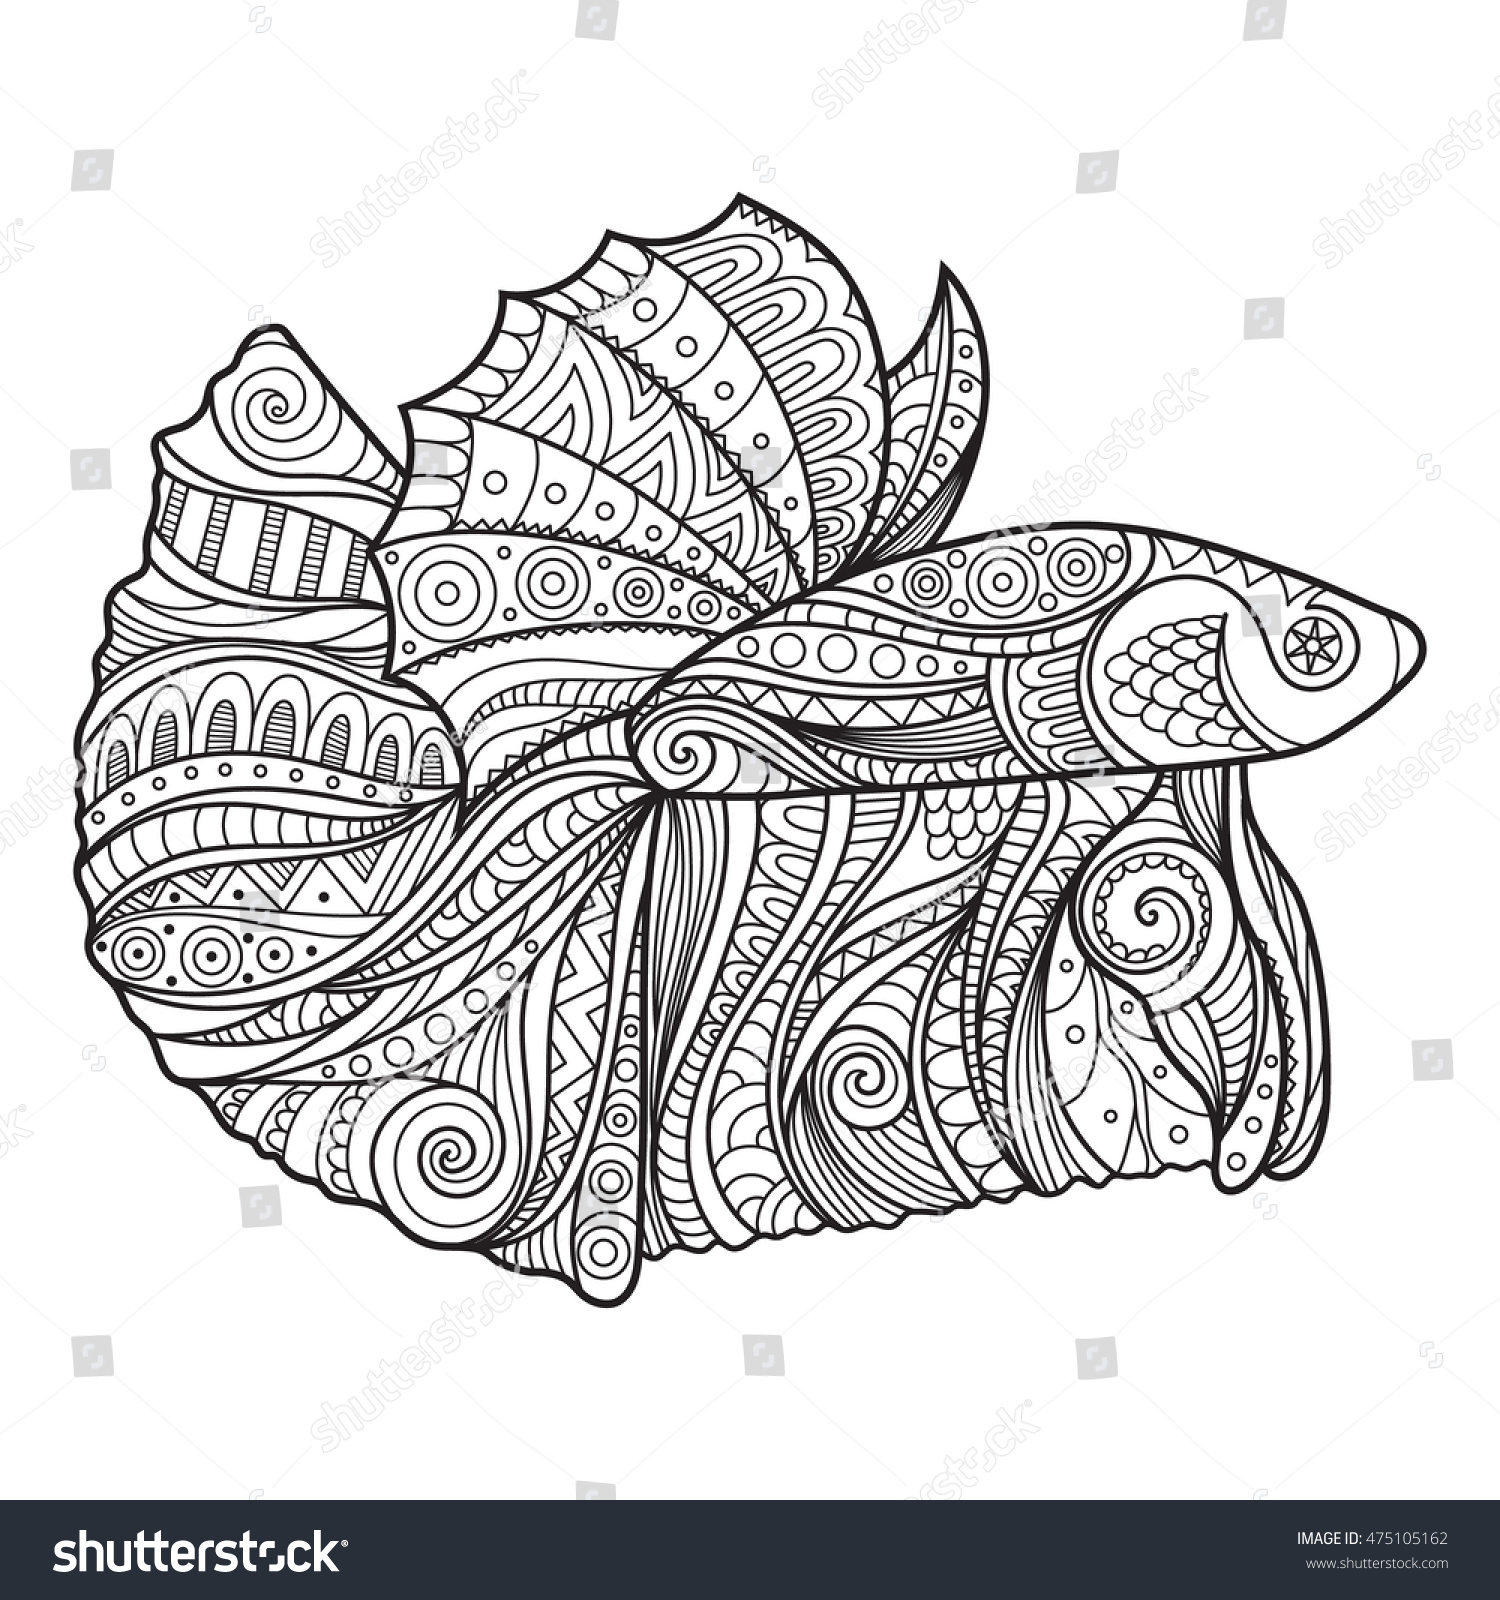 Betta Fish Coloring Pages Printable Betta Best Free